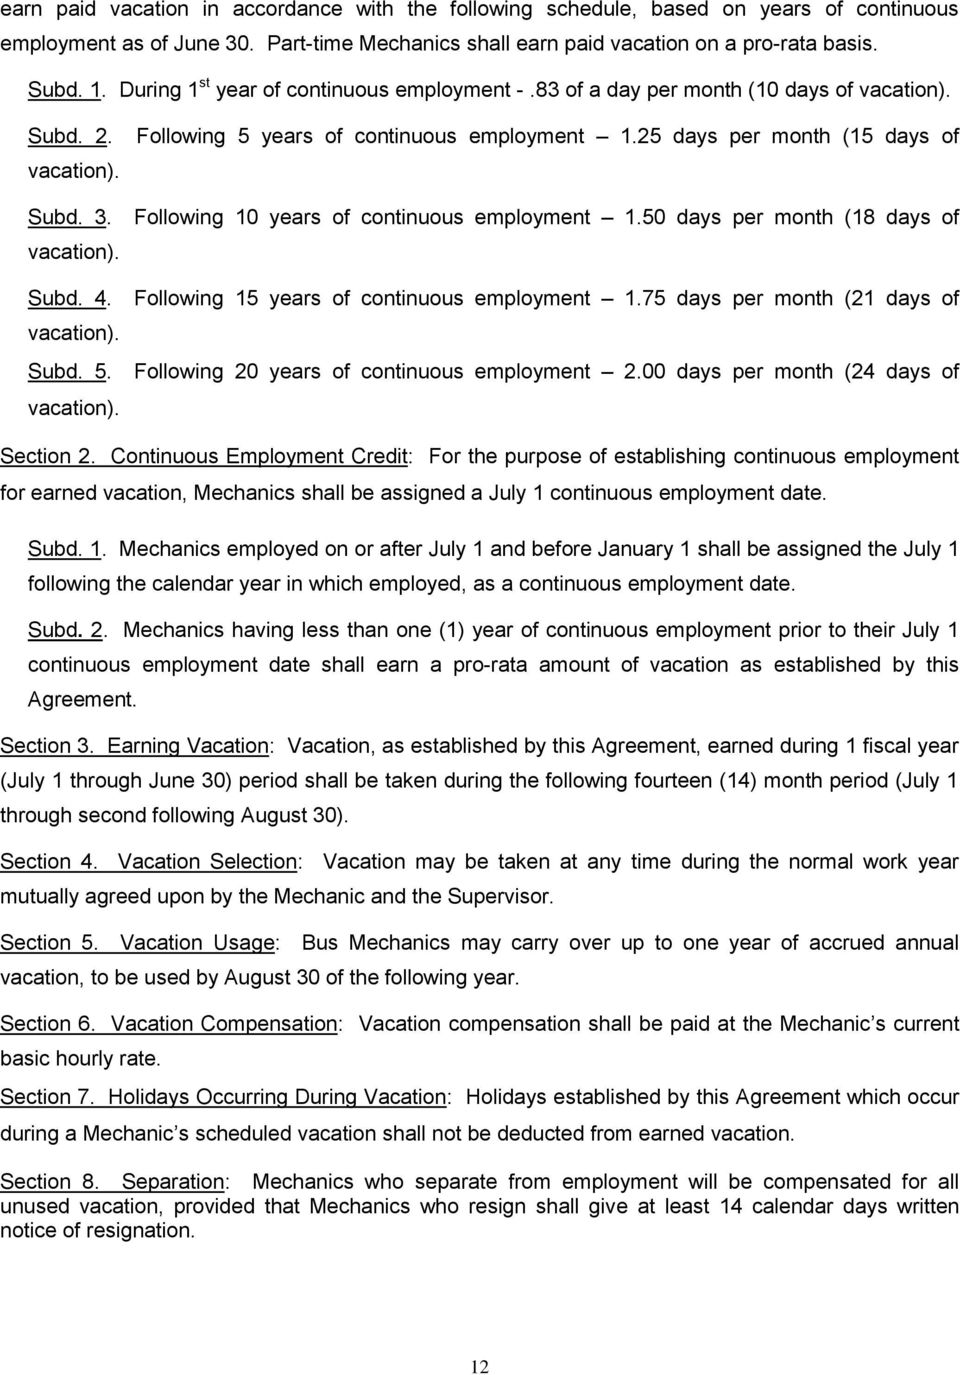 Following 10 years of continuous employment 1.50 days per month (18 days of vacation). Subd. 4. Following 15 years of continuous employment 1.75 days per month (21 days of vacation). Subd. 5.